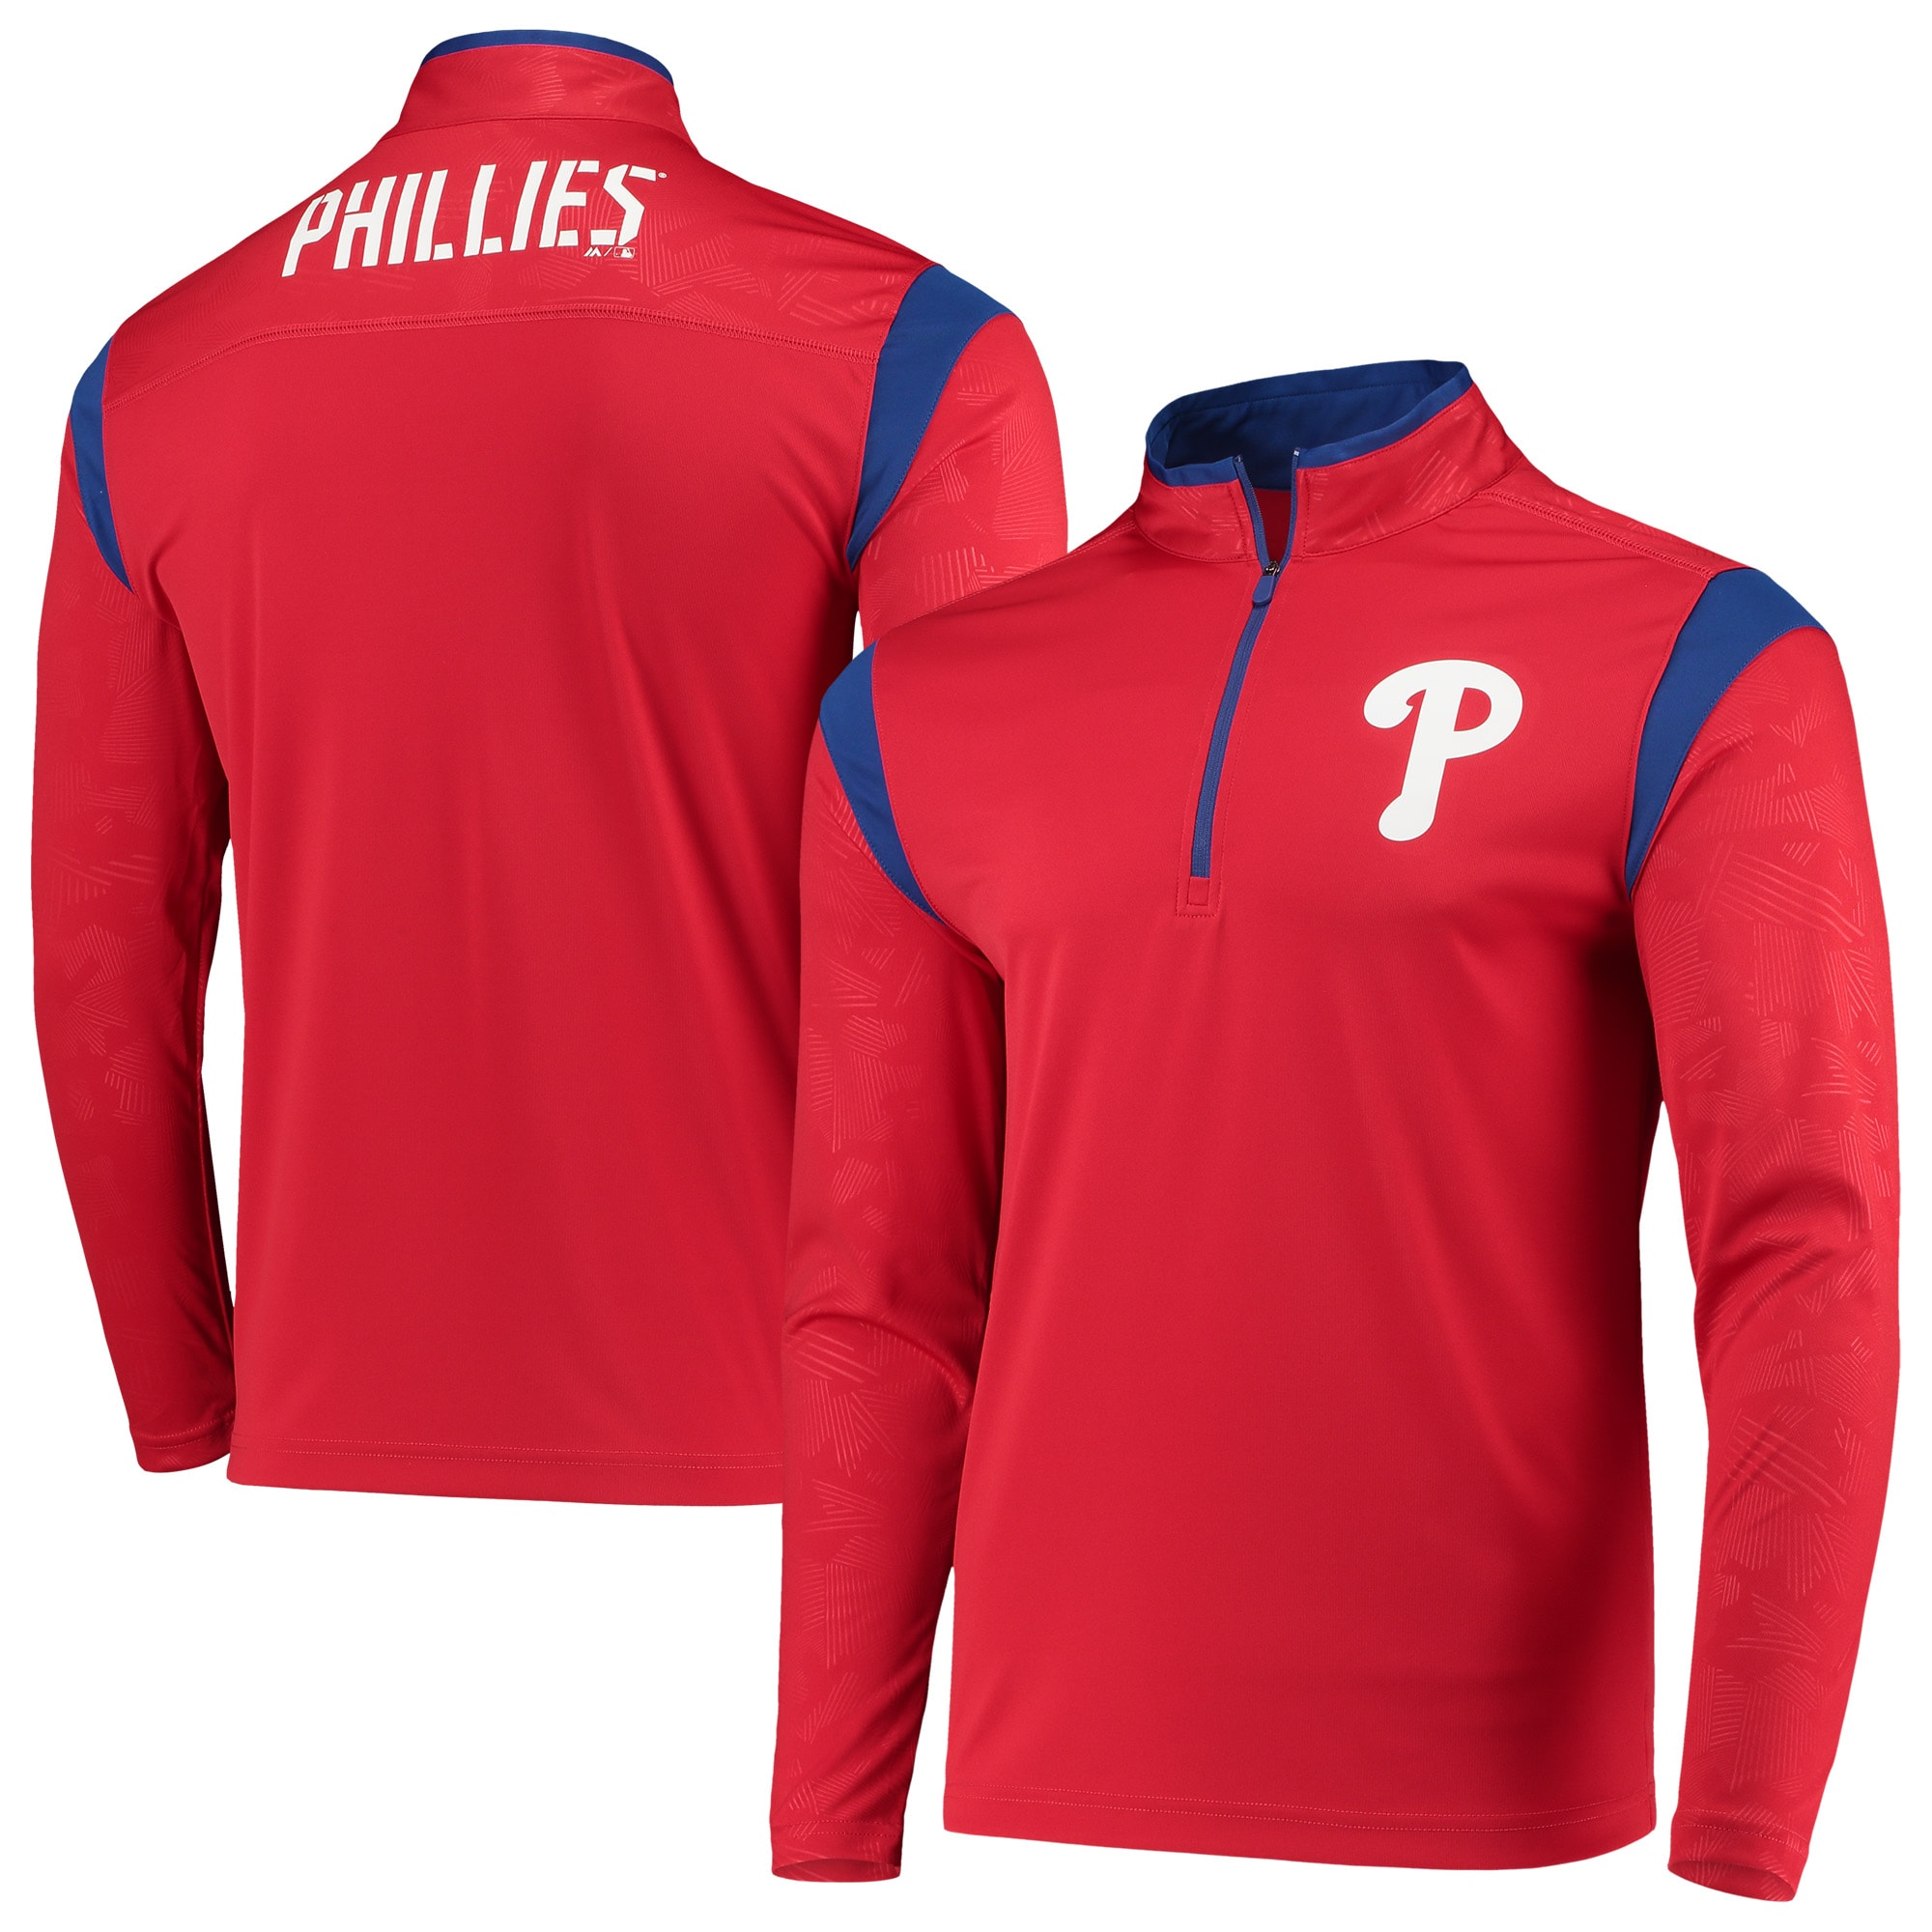 Philadelphia Phillies Fanatics Branded Defender Primary Half-Zip Pullover Jacket - Red